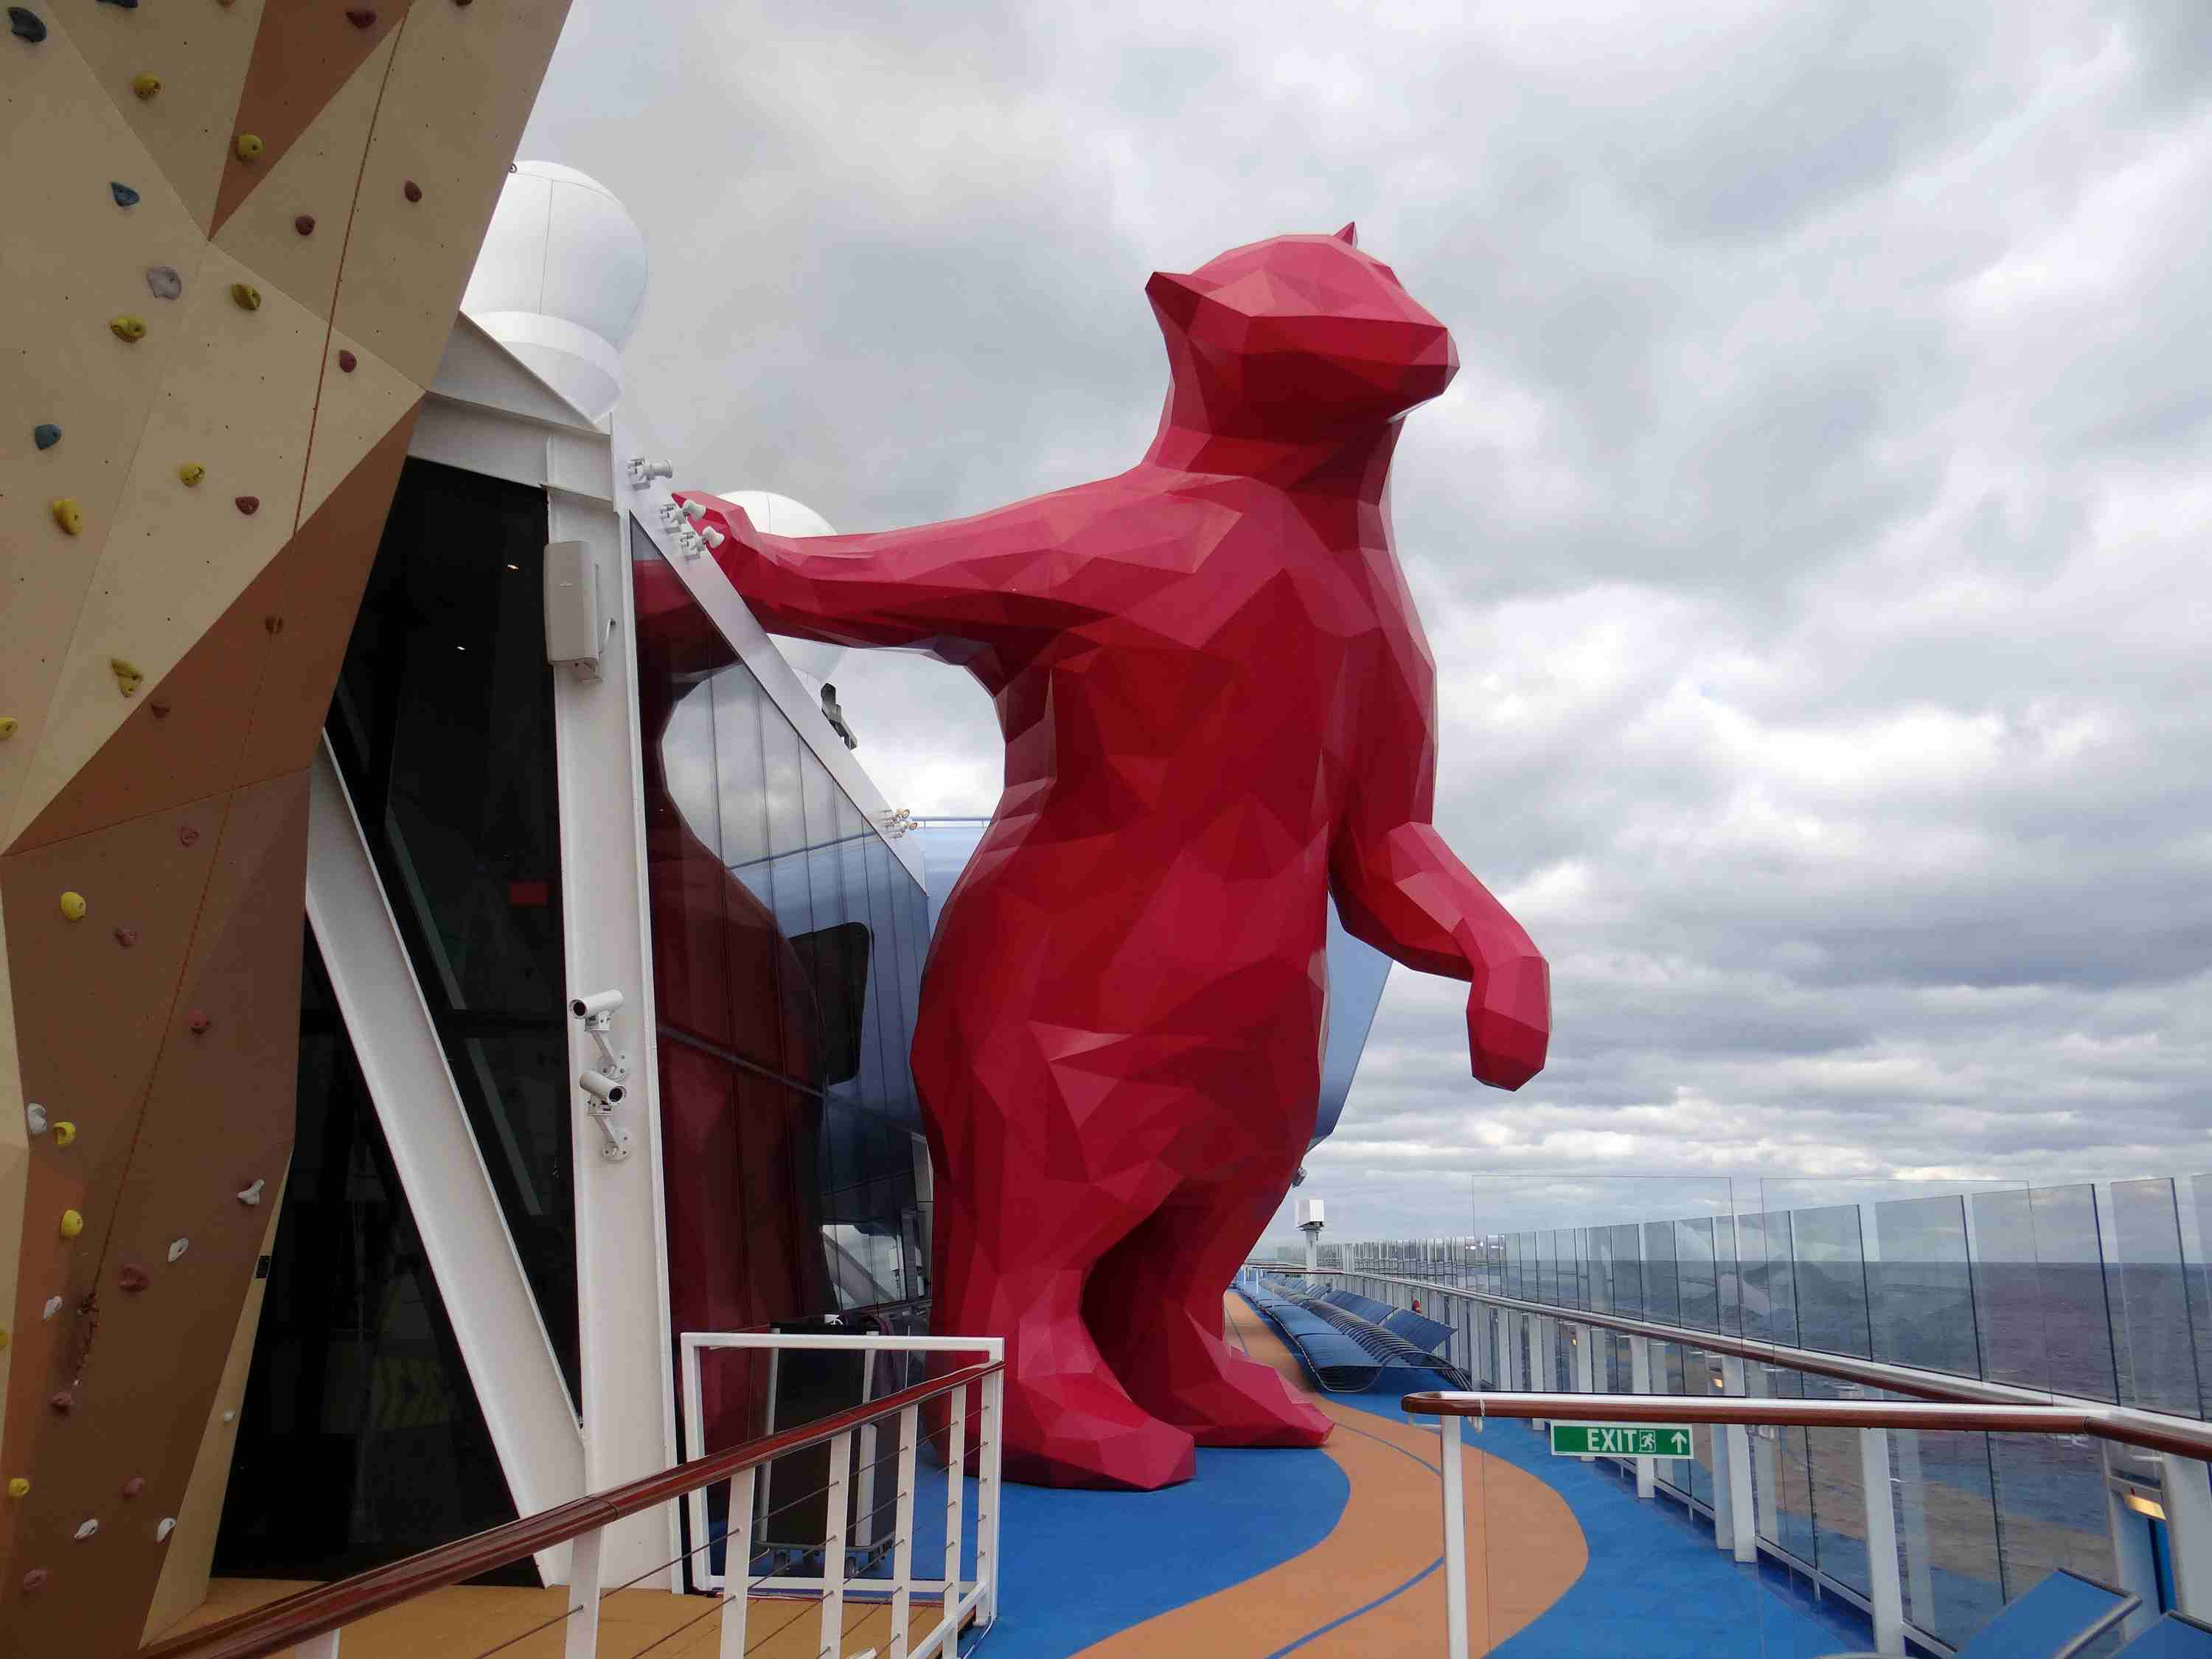 Giant Magenta Bear on the Quantum of the Seas